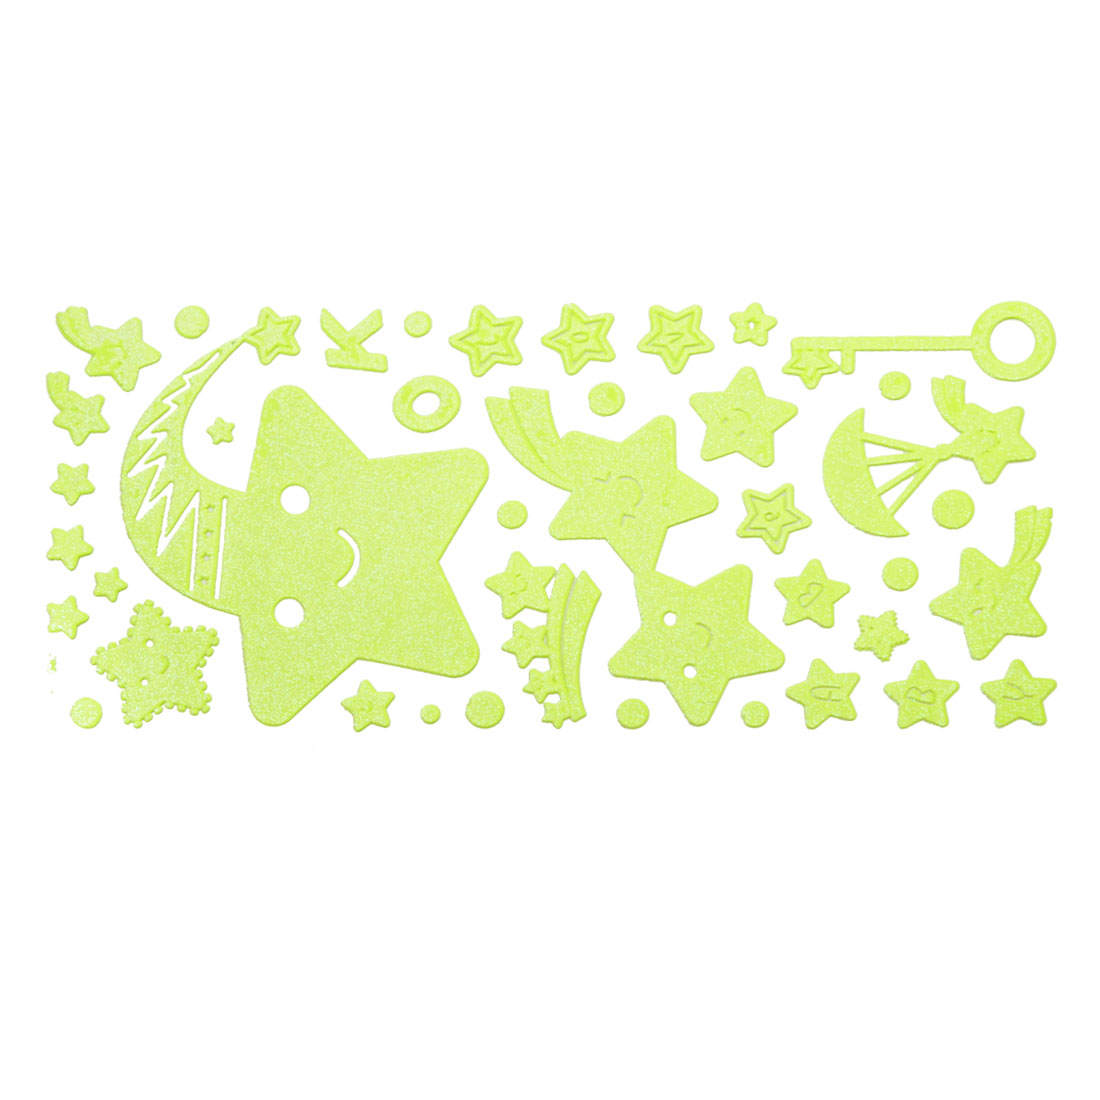 Wall Decor Smile Star Design Light Green Luminous Stickers 41 in 1 Set